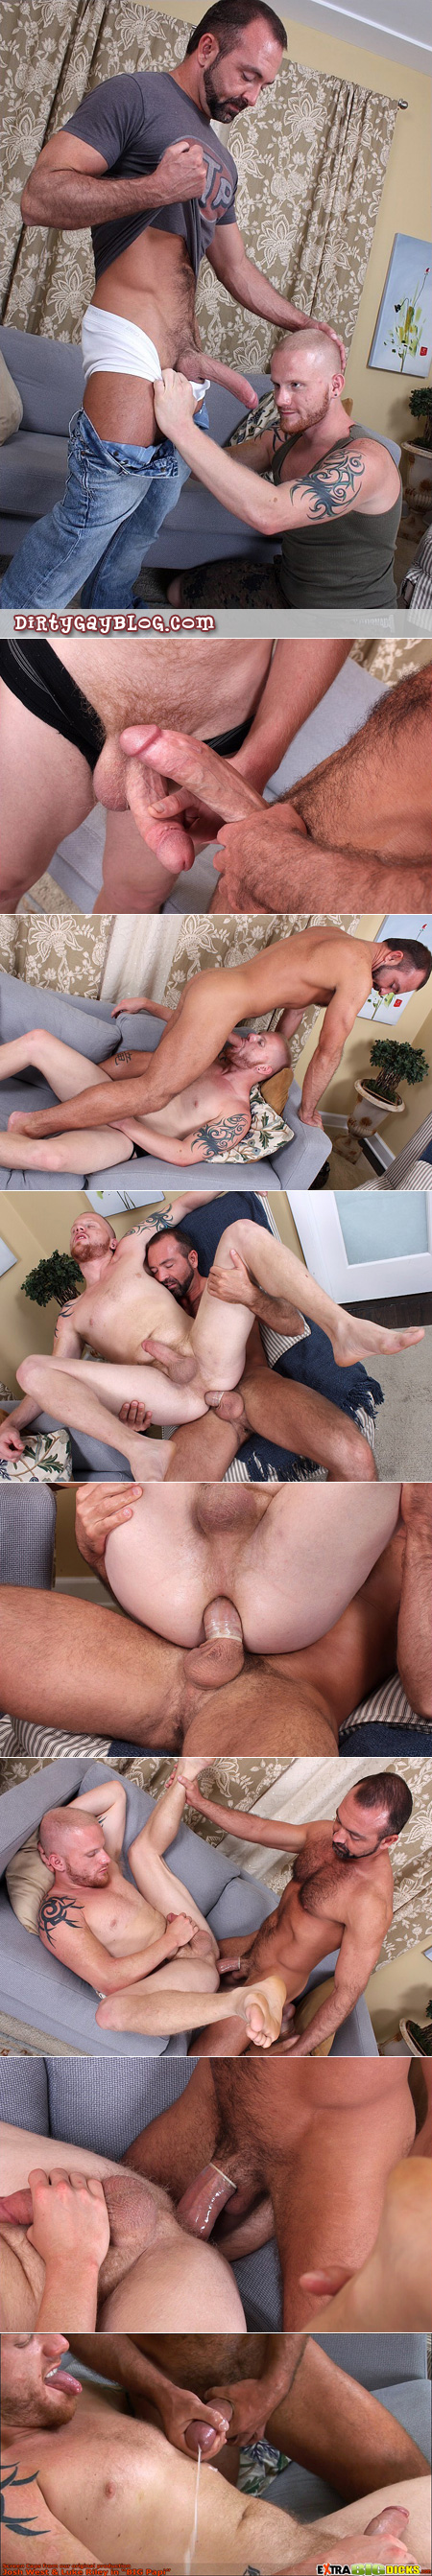 Bearded wolf male uses his gigantic cock to fuck a redhead guy with a shaved head.